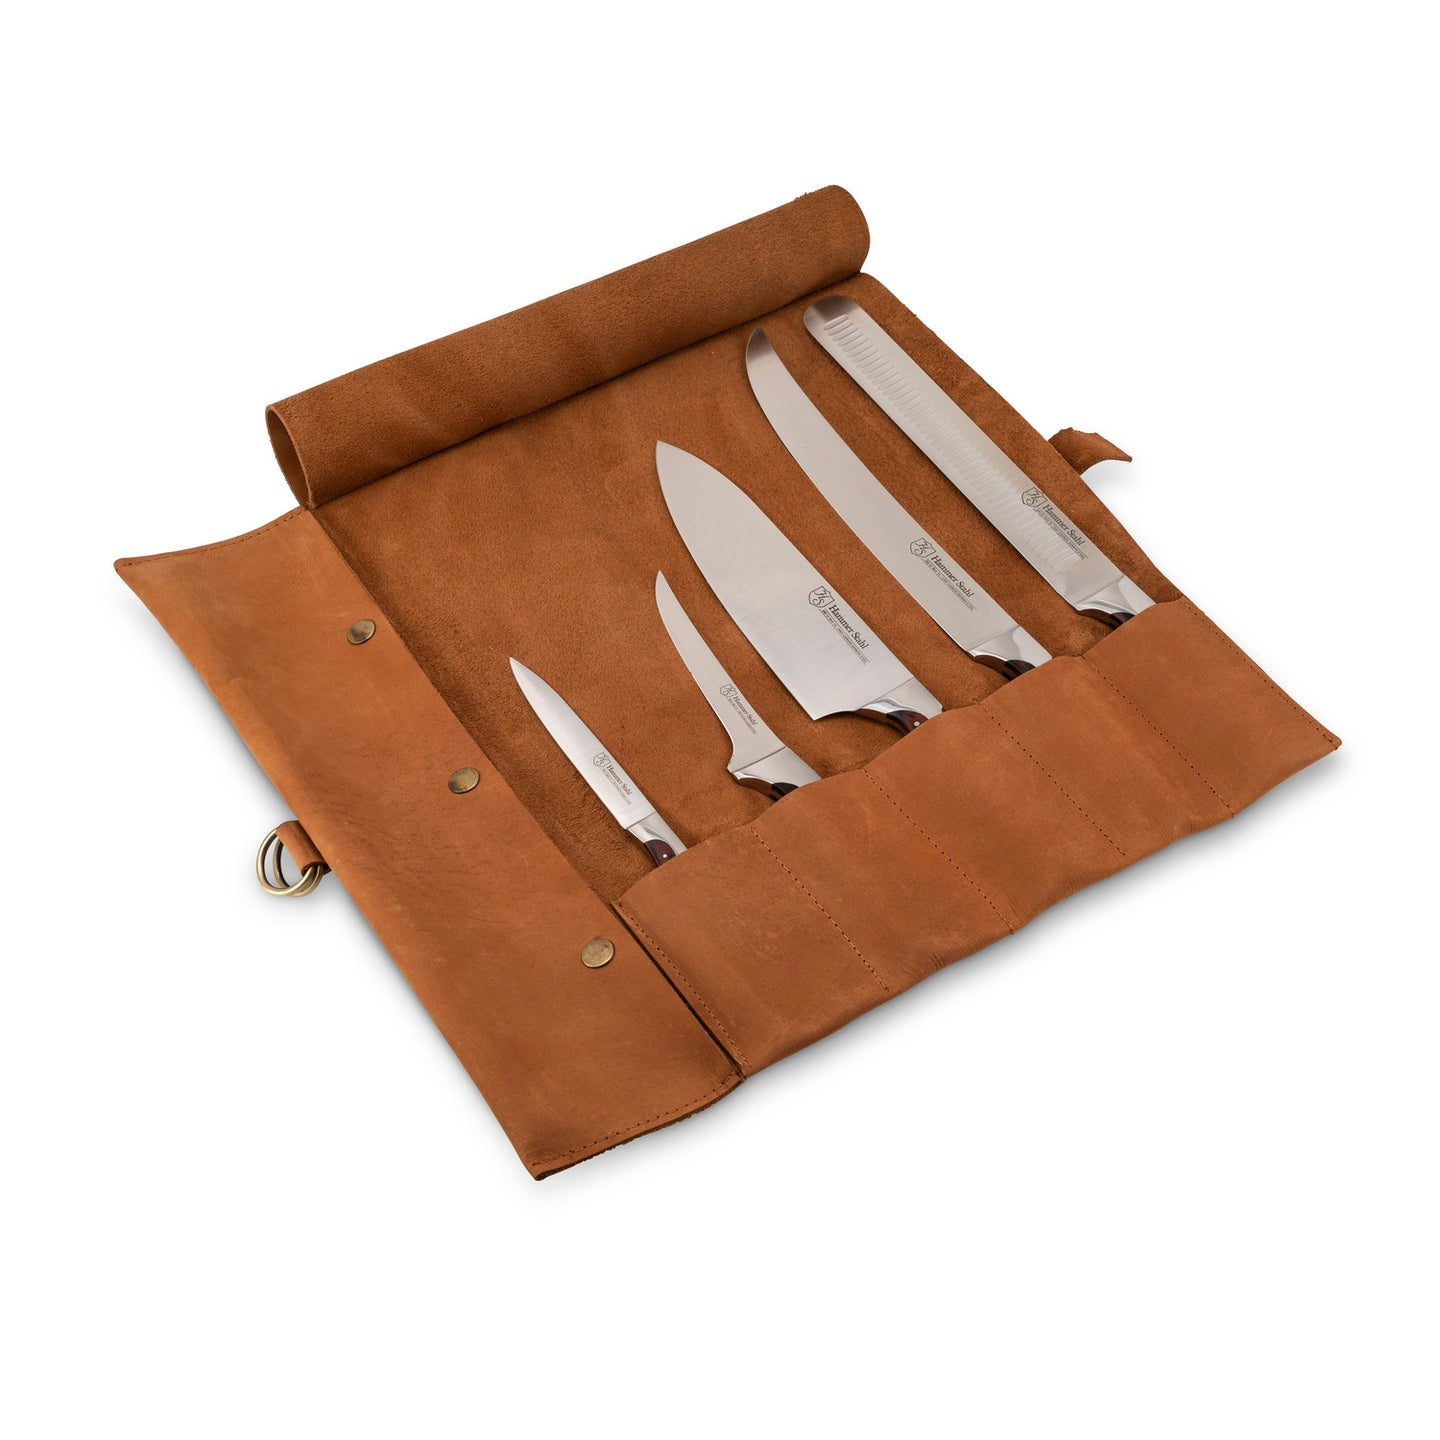 Barbecue Knife Set